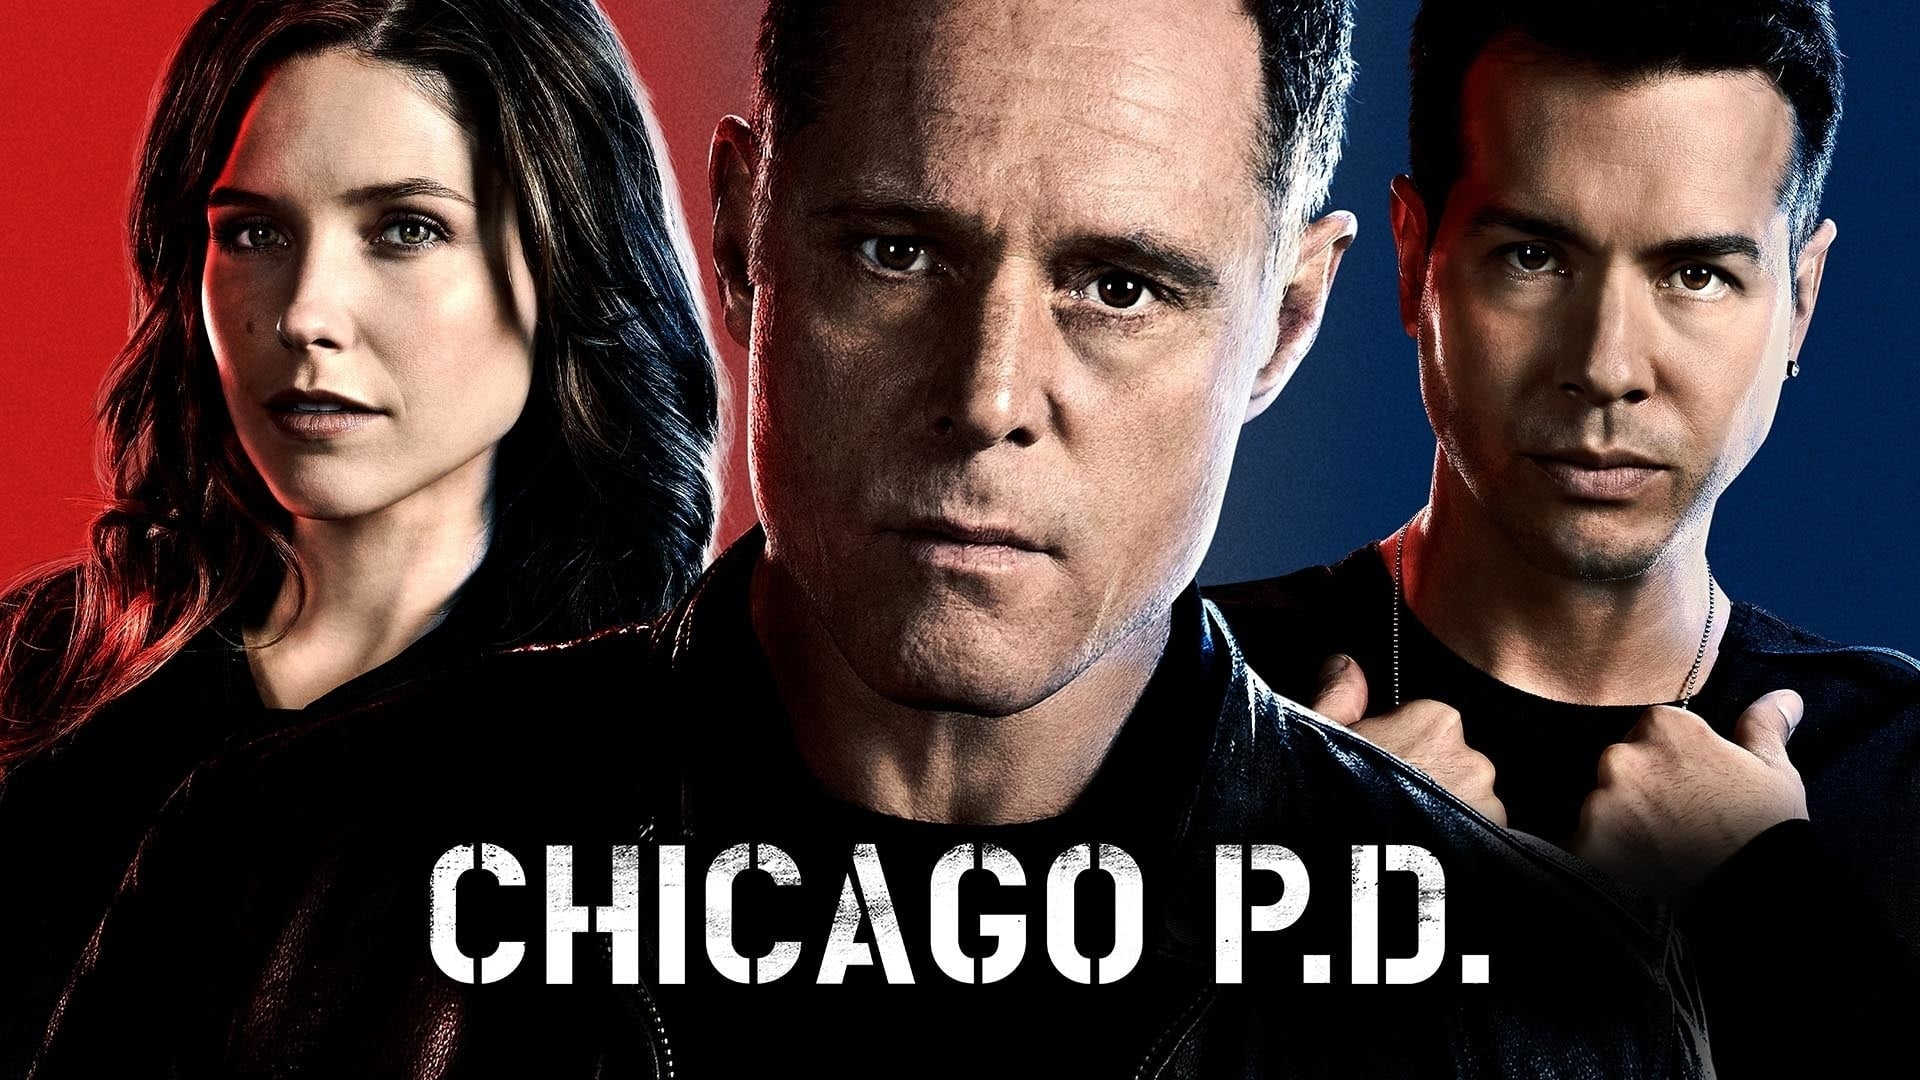 Chicago P.D. - Season 7 Episode 8